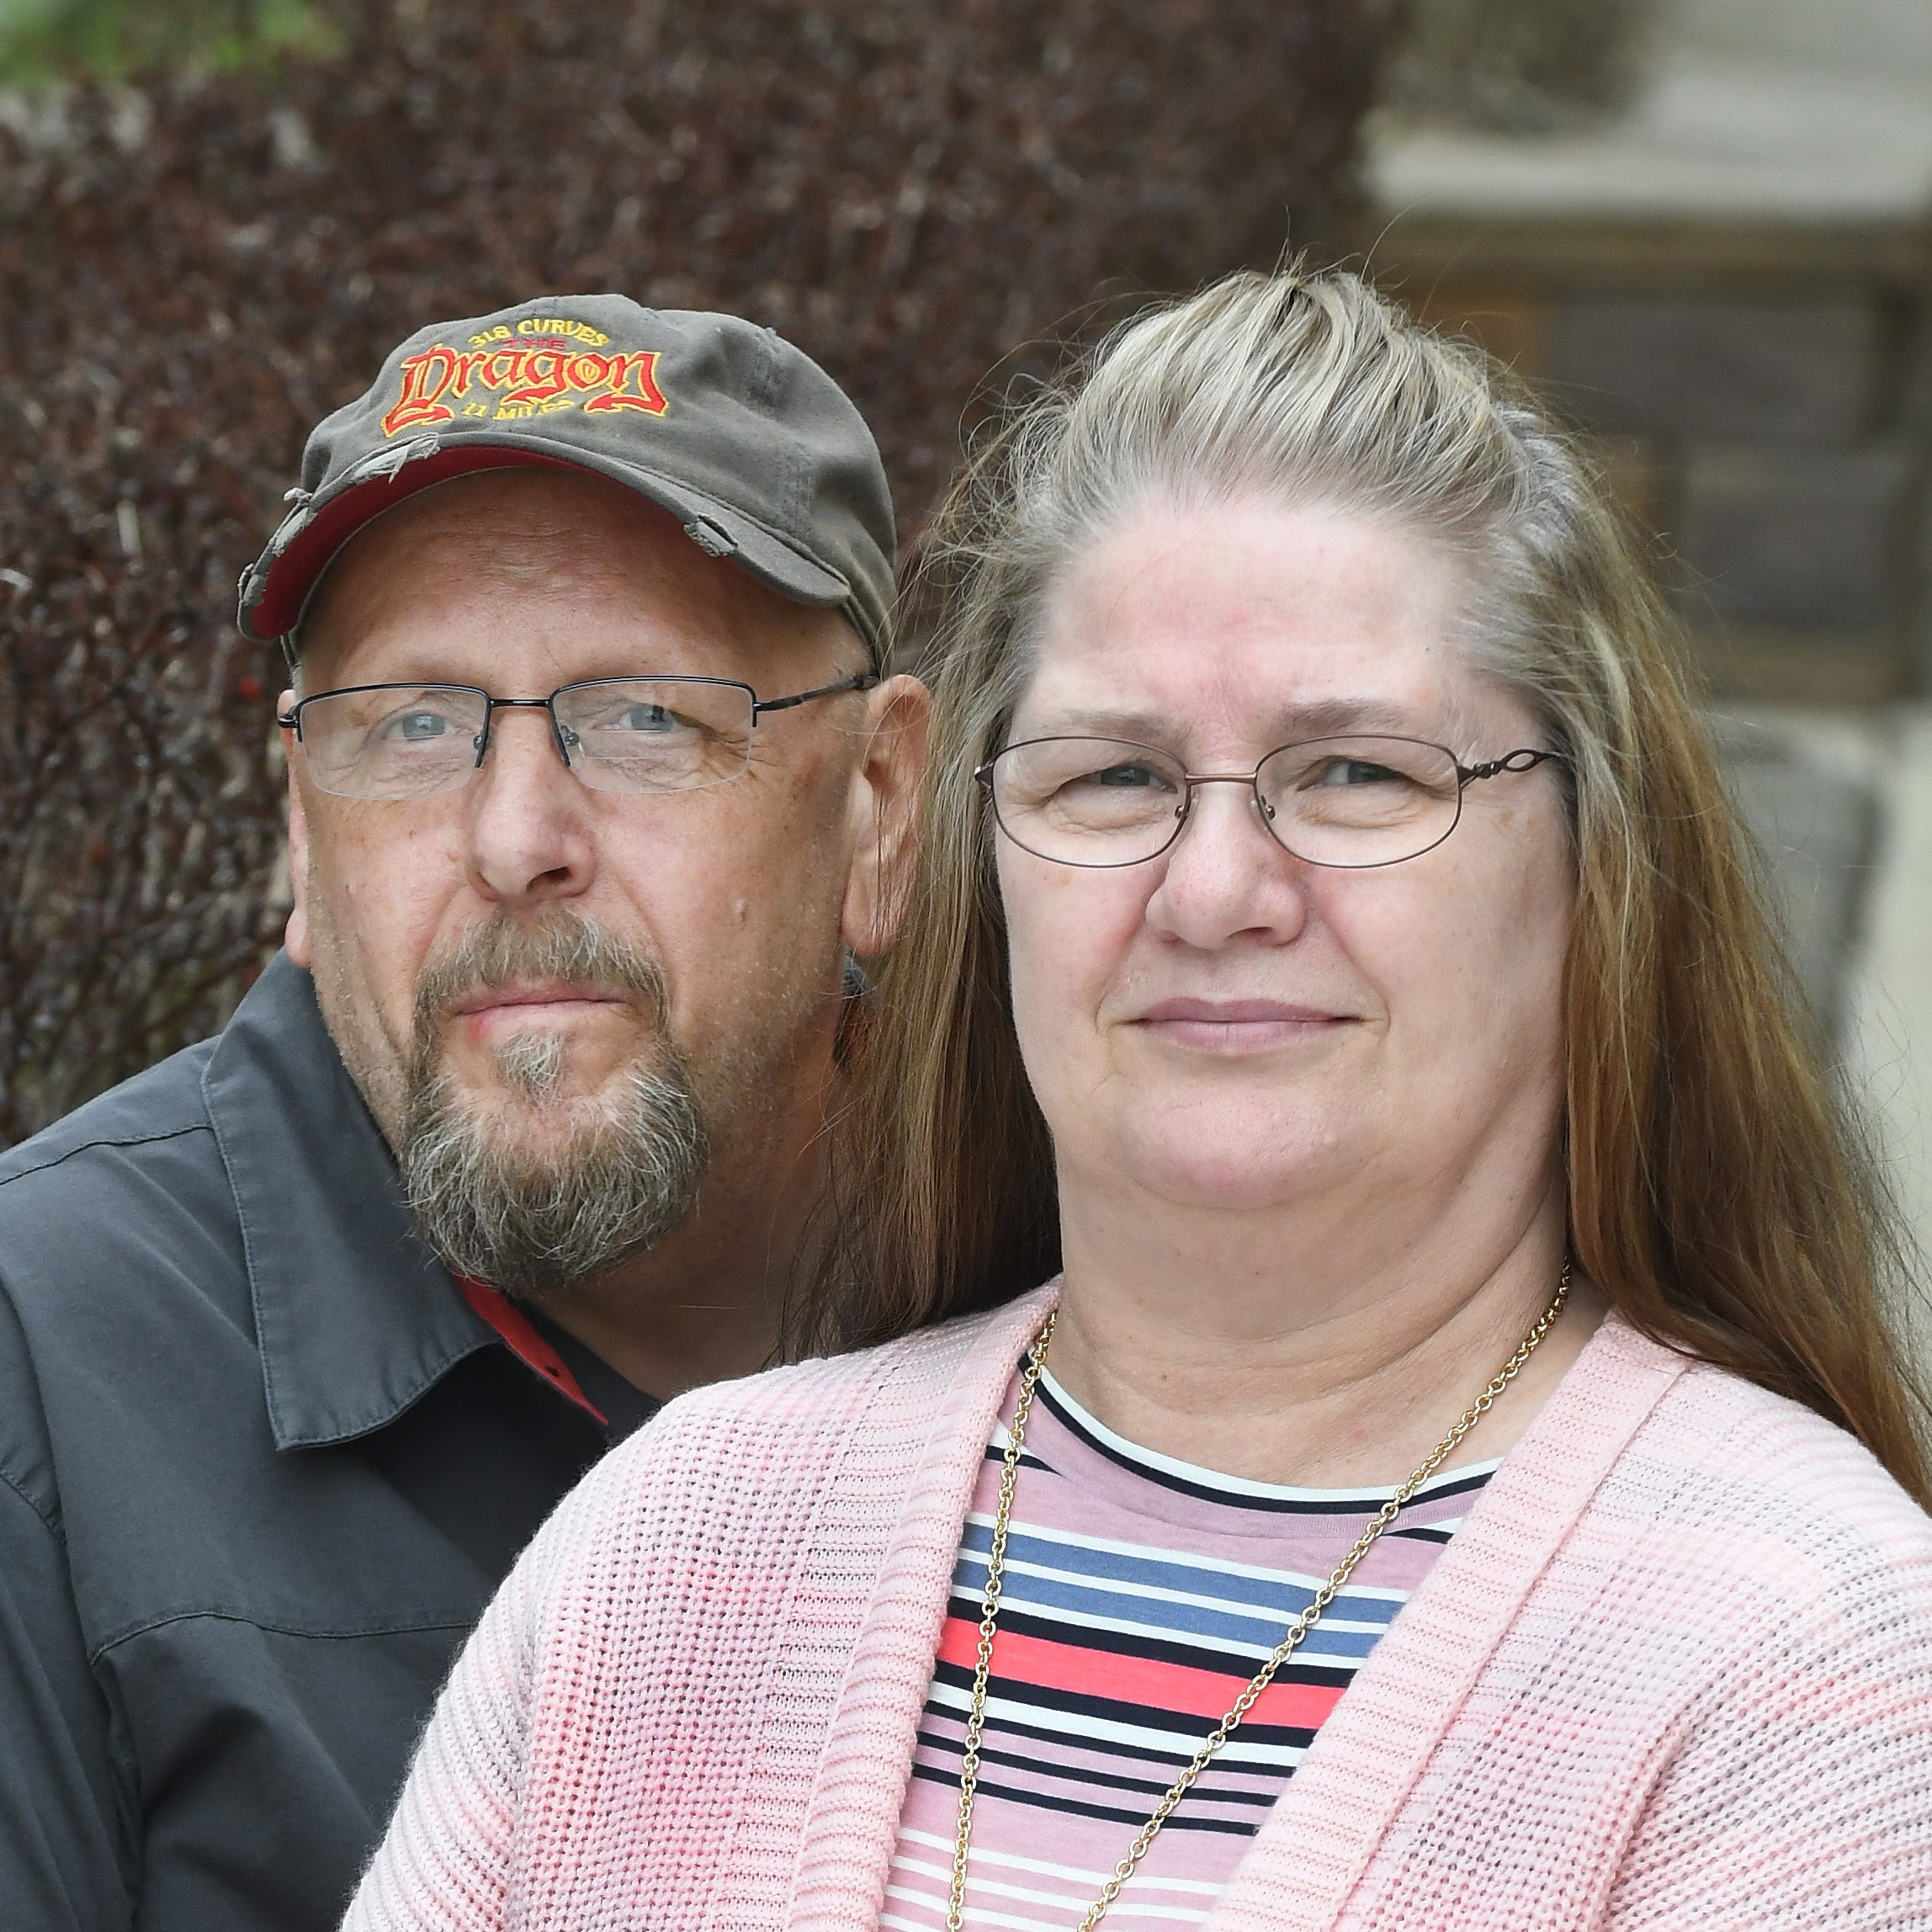 After 5 years, cancer doc's victims say 'it's time to pay up'